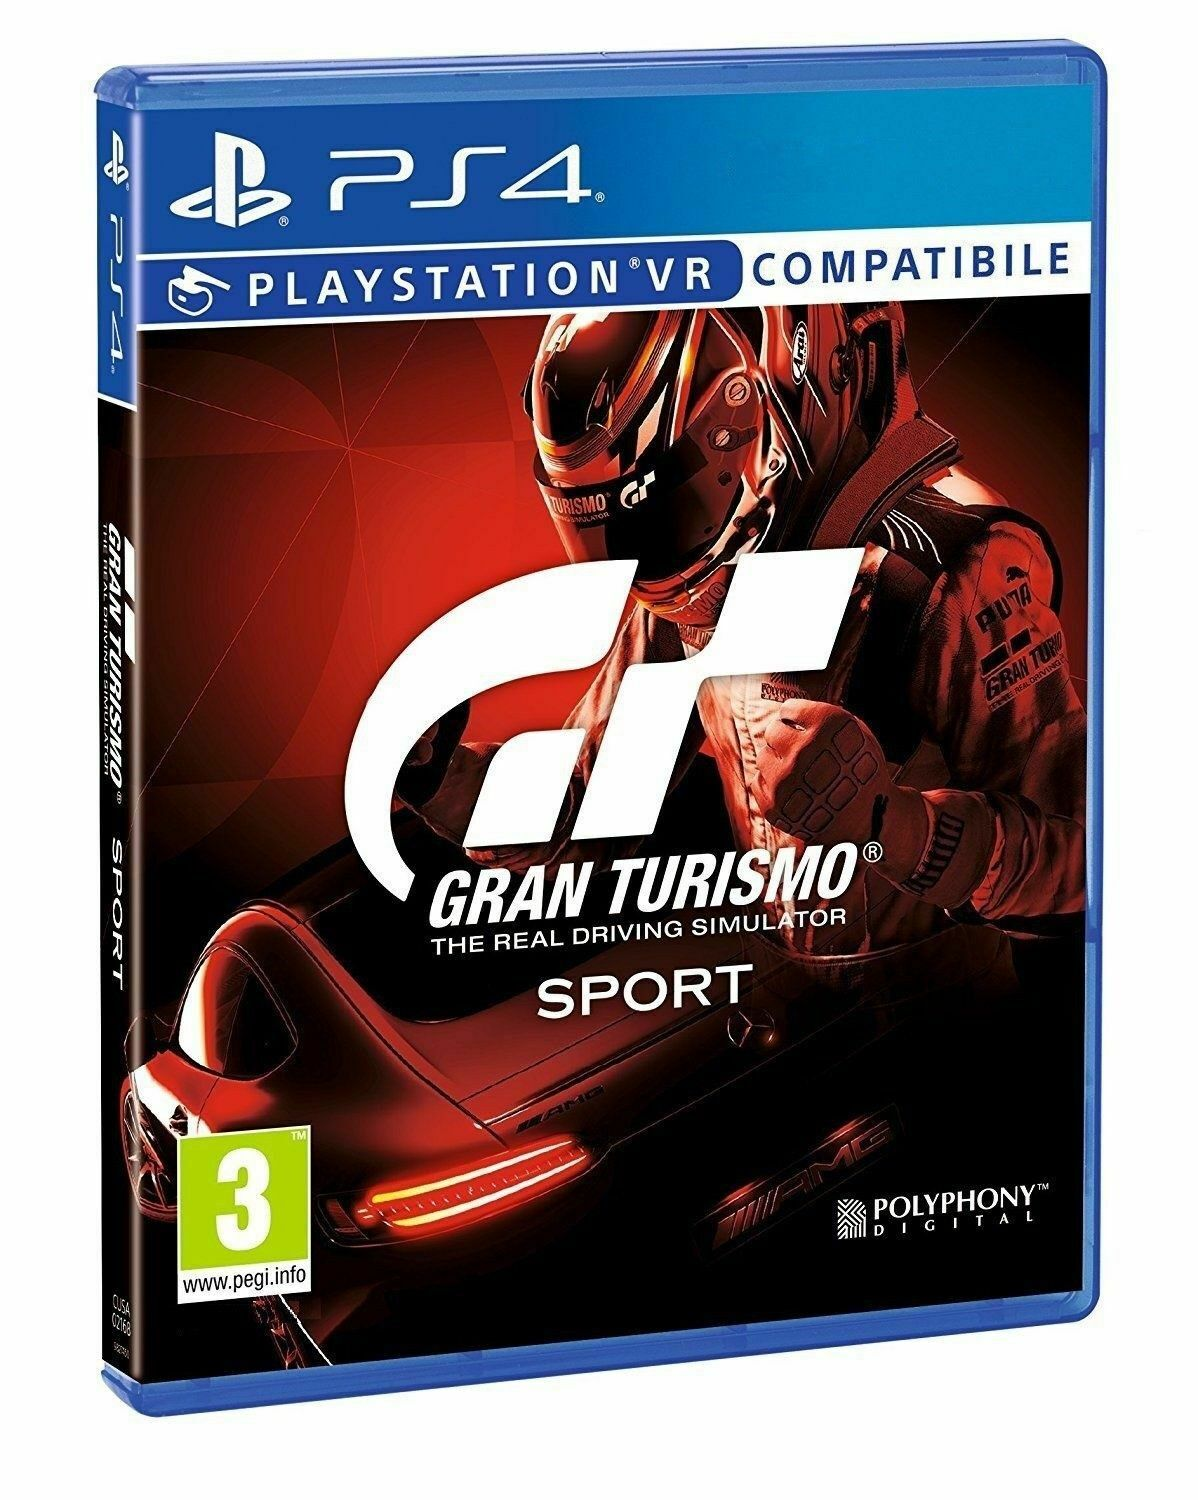 gt sport ps4 videogioco gran turismo 7 sport ps4 italiano play station 4 nuovo eur 28 97. Black Bedroom Furniture Sets. Home Design Ideas